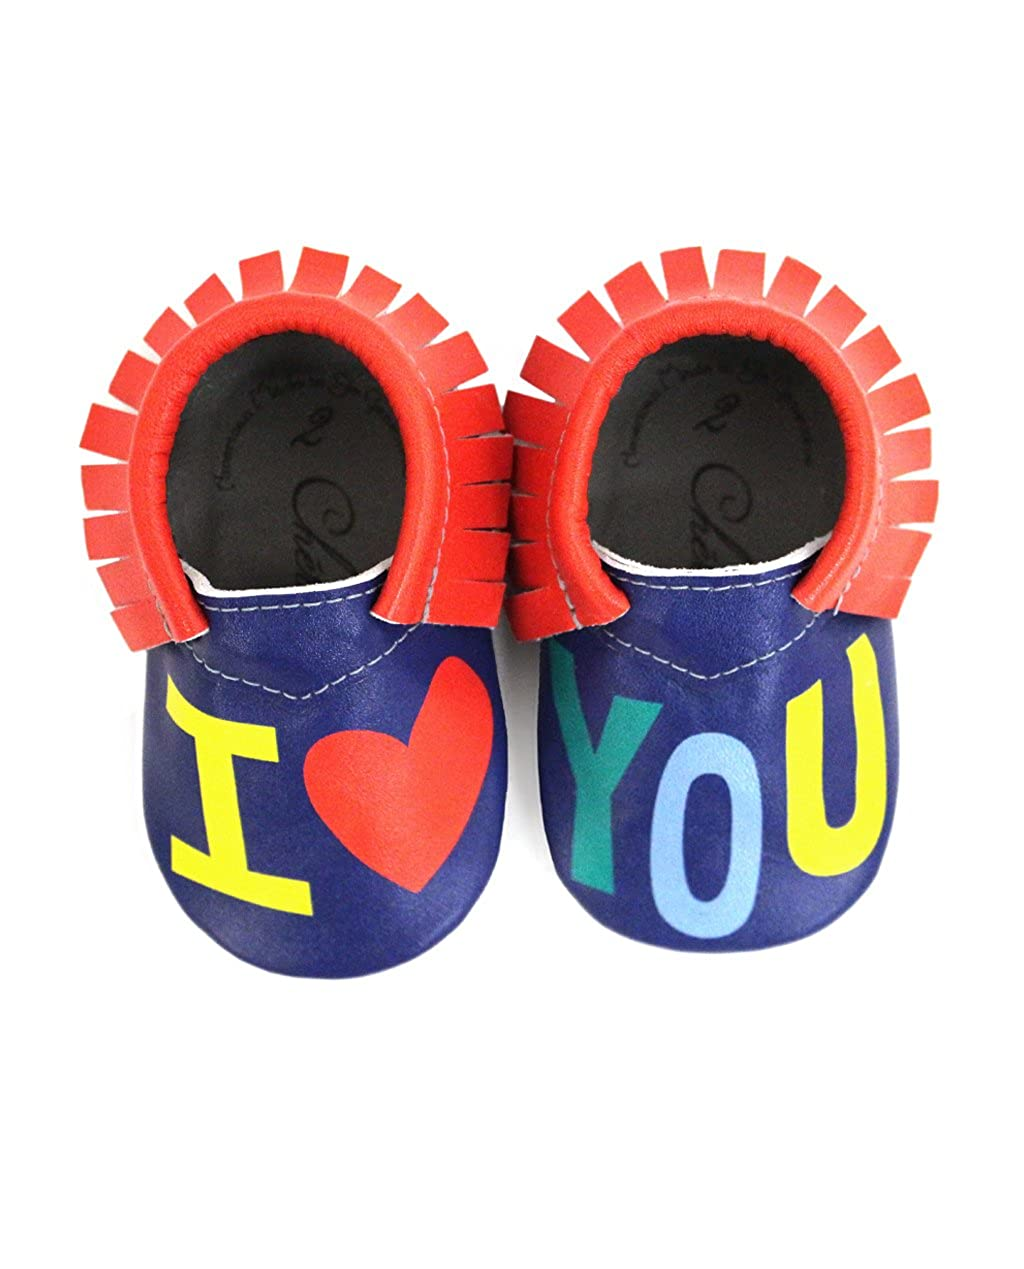 I Heart You Moccasin • 100% American leather moccasins for babies & toddlers • Made in US CS000036